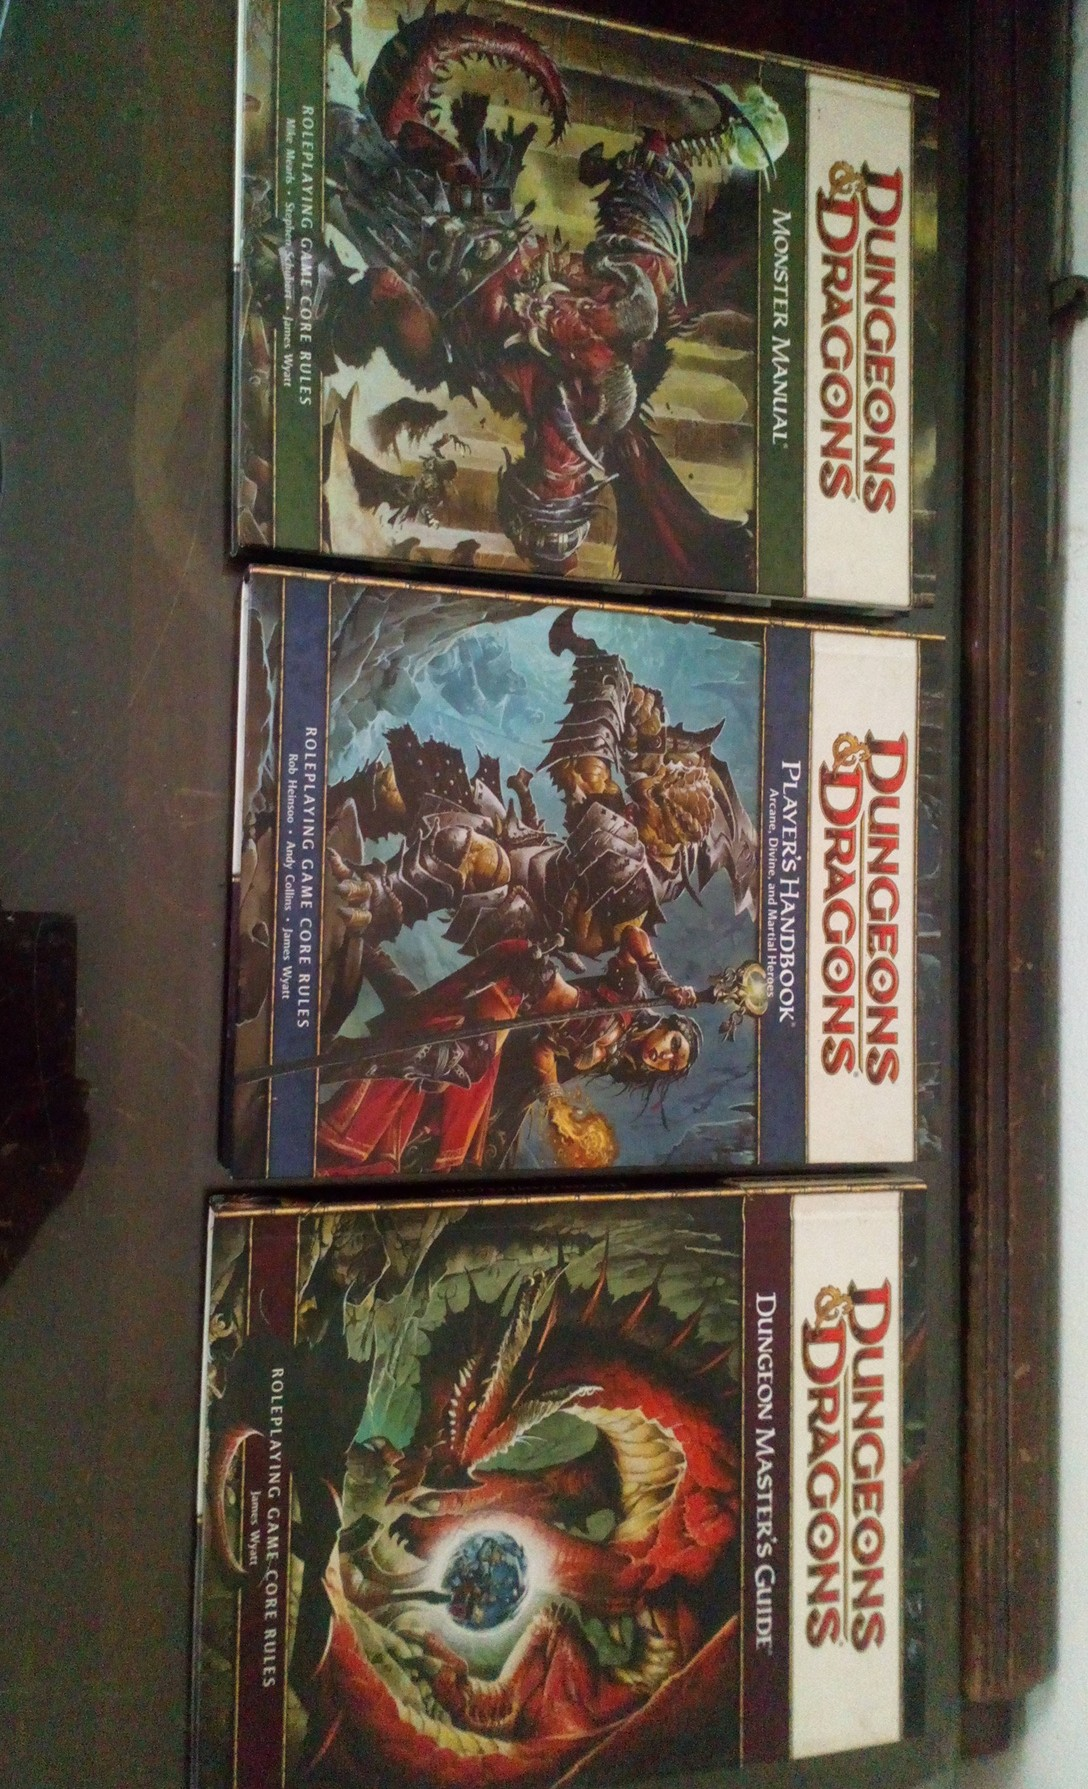 4th edition Dungeons and Dragons Players hand book, Monster manual and Dungeon masters guide.